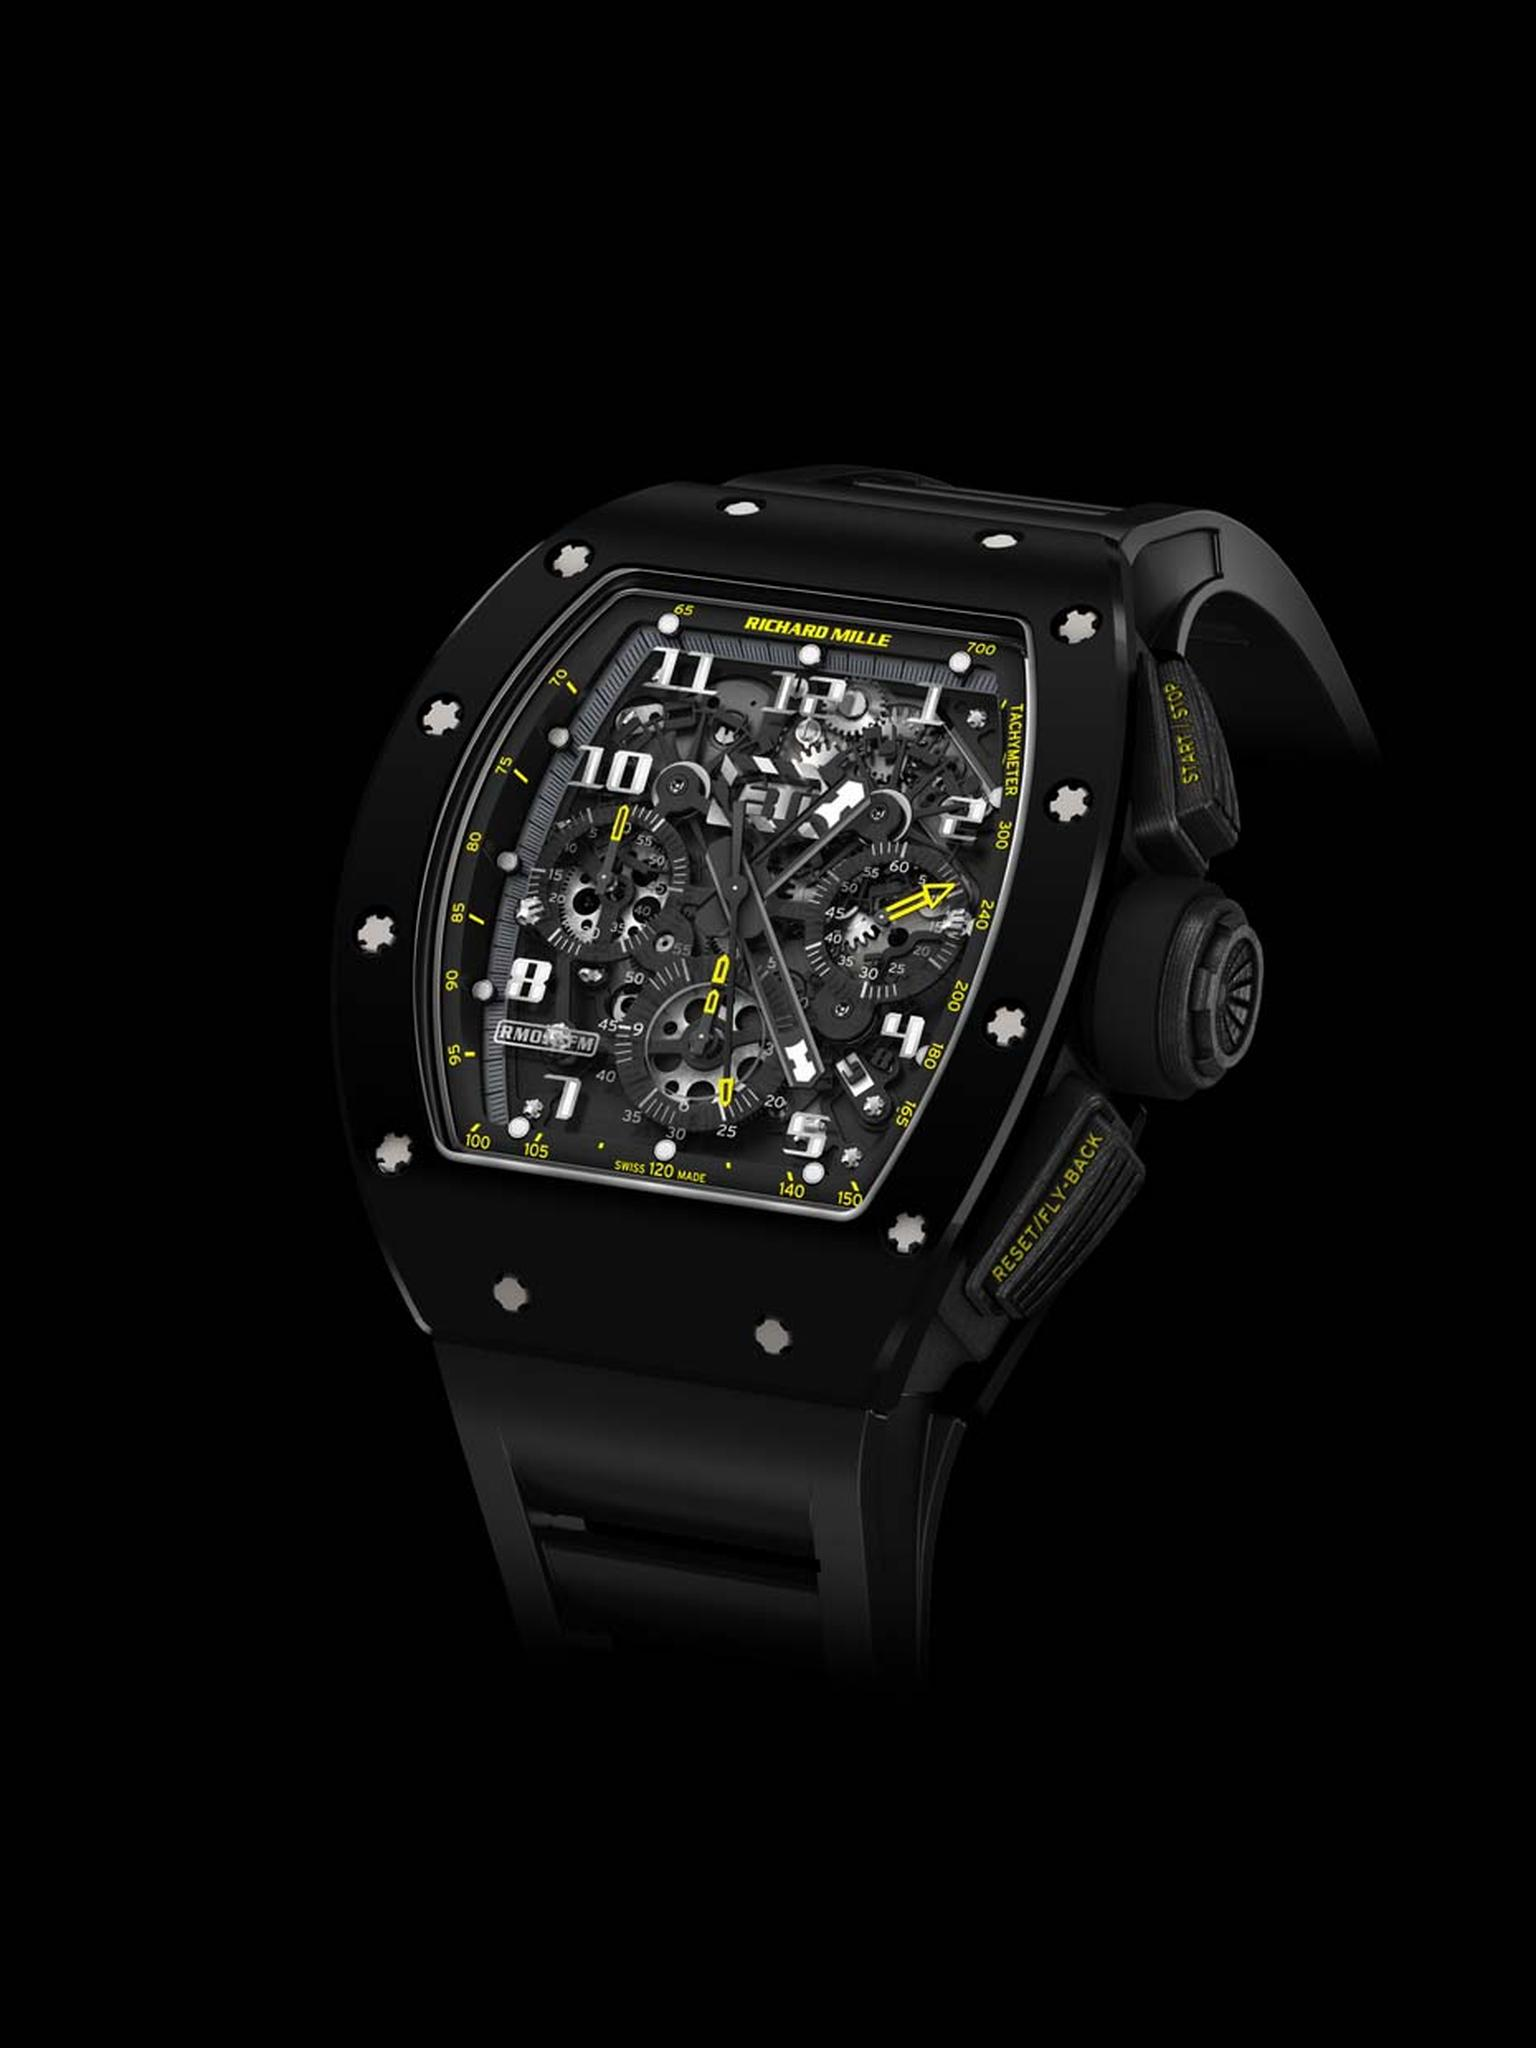 New to the Richard Mille watches stable is the RM 011 Yellow Flash Automatic Flyback Chronograph, the latest rendition of the iconic Felipe Massa watch and limited to just 50 pieces. Equipped with a sophisticated flyback chronograph movement and crafted f